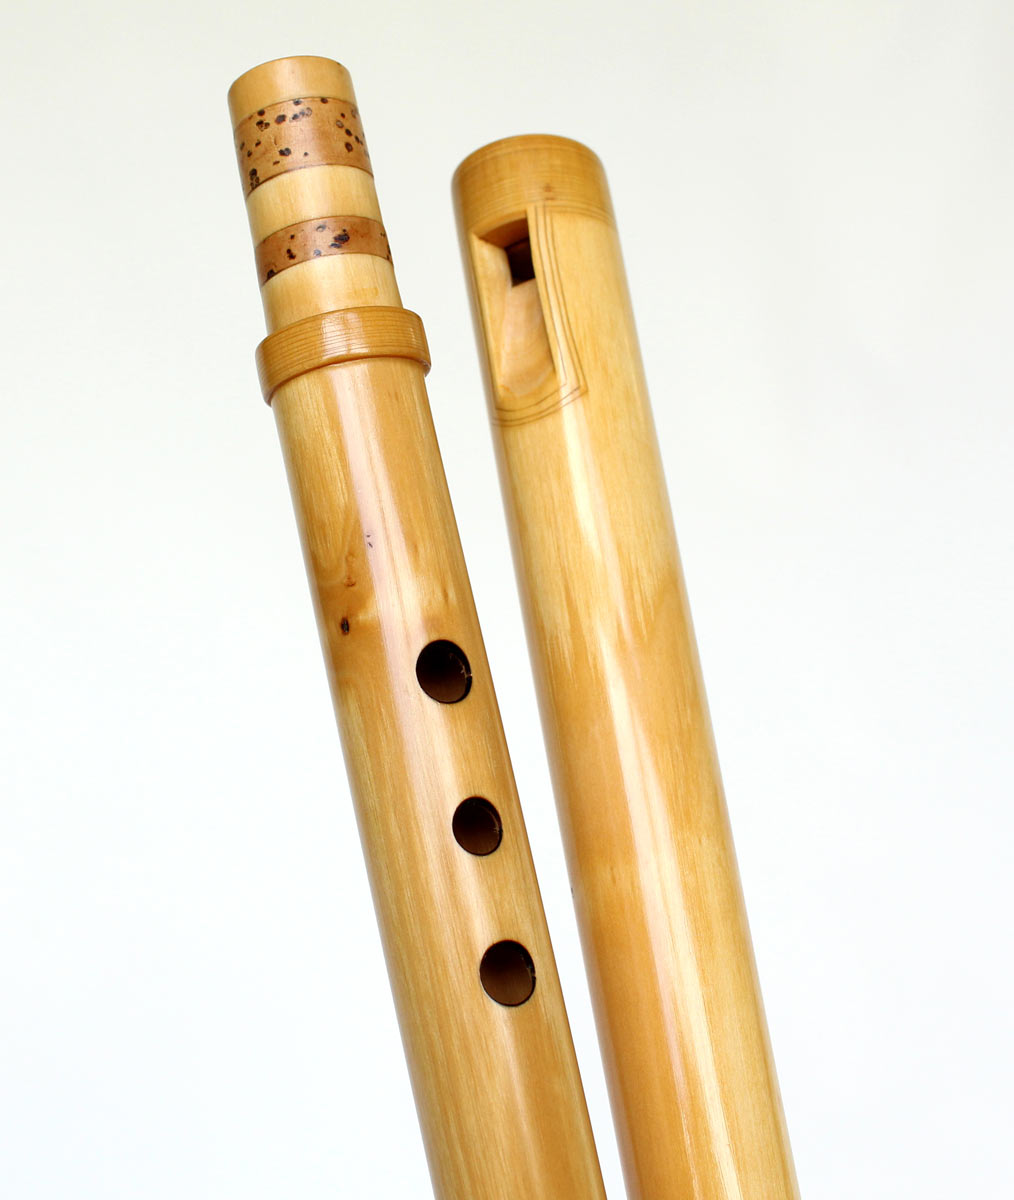 Kaval-flute-master-maker winne-clement-fluiten-maker-luthier-craftsman-music-instrument-wood-wind--caval-fipple-dilli-joint-collapsible-tuning.jpg